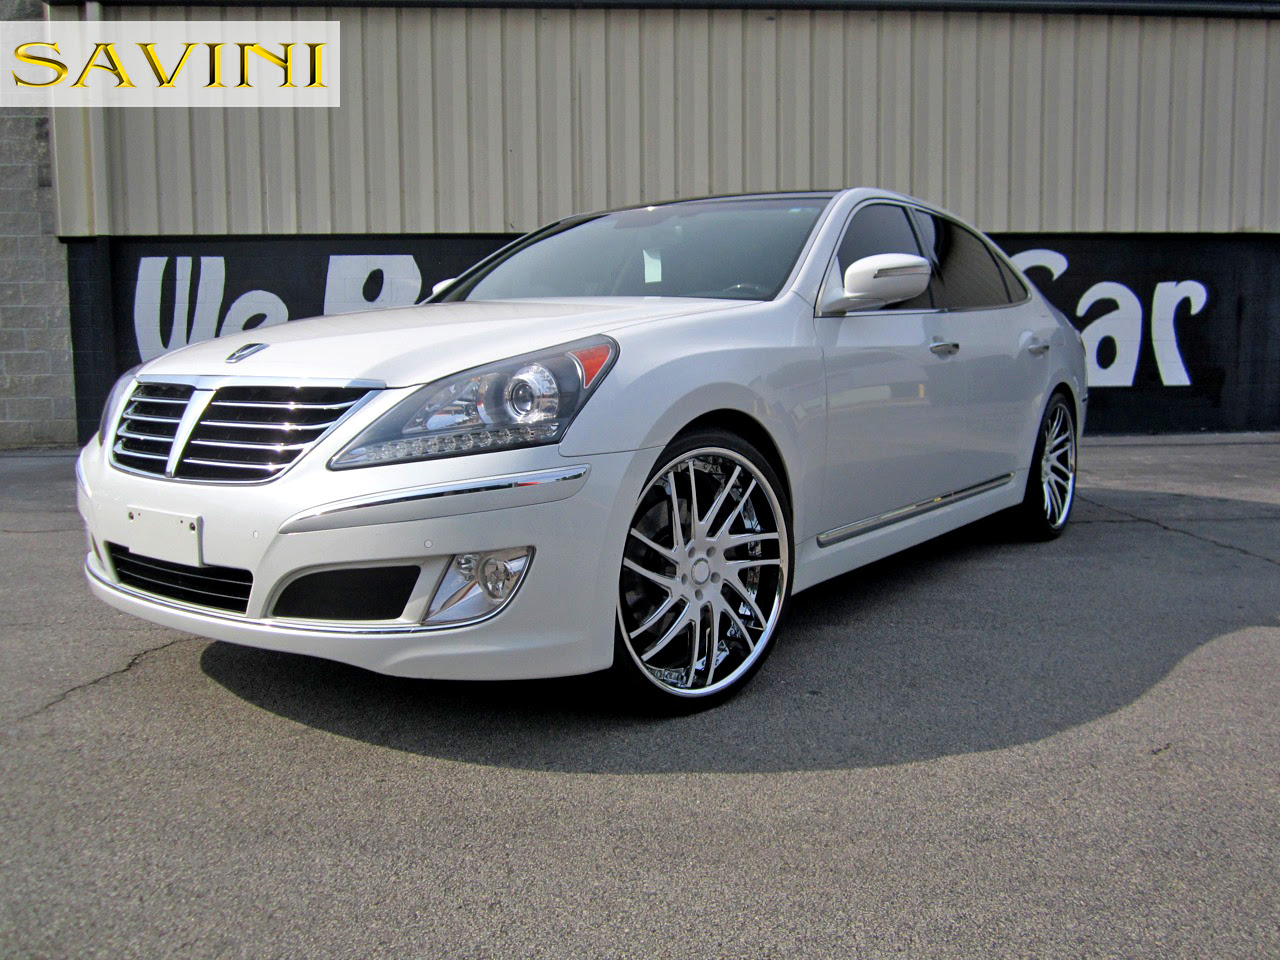 2014 Chevy Impala >> Hyundai Equus On Savini Wheels By Butler Tire - Rides Magazine